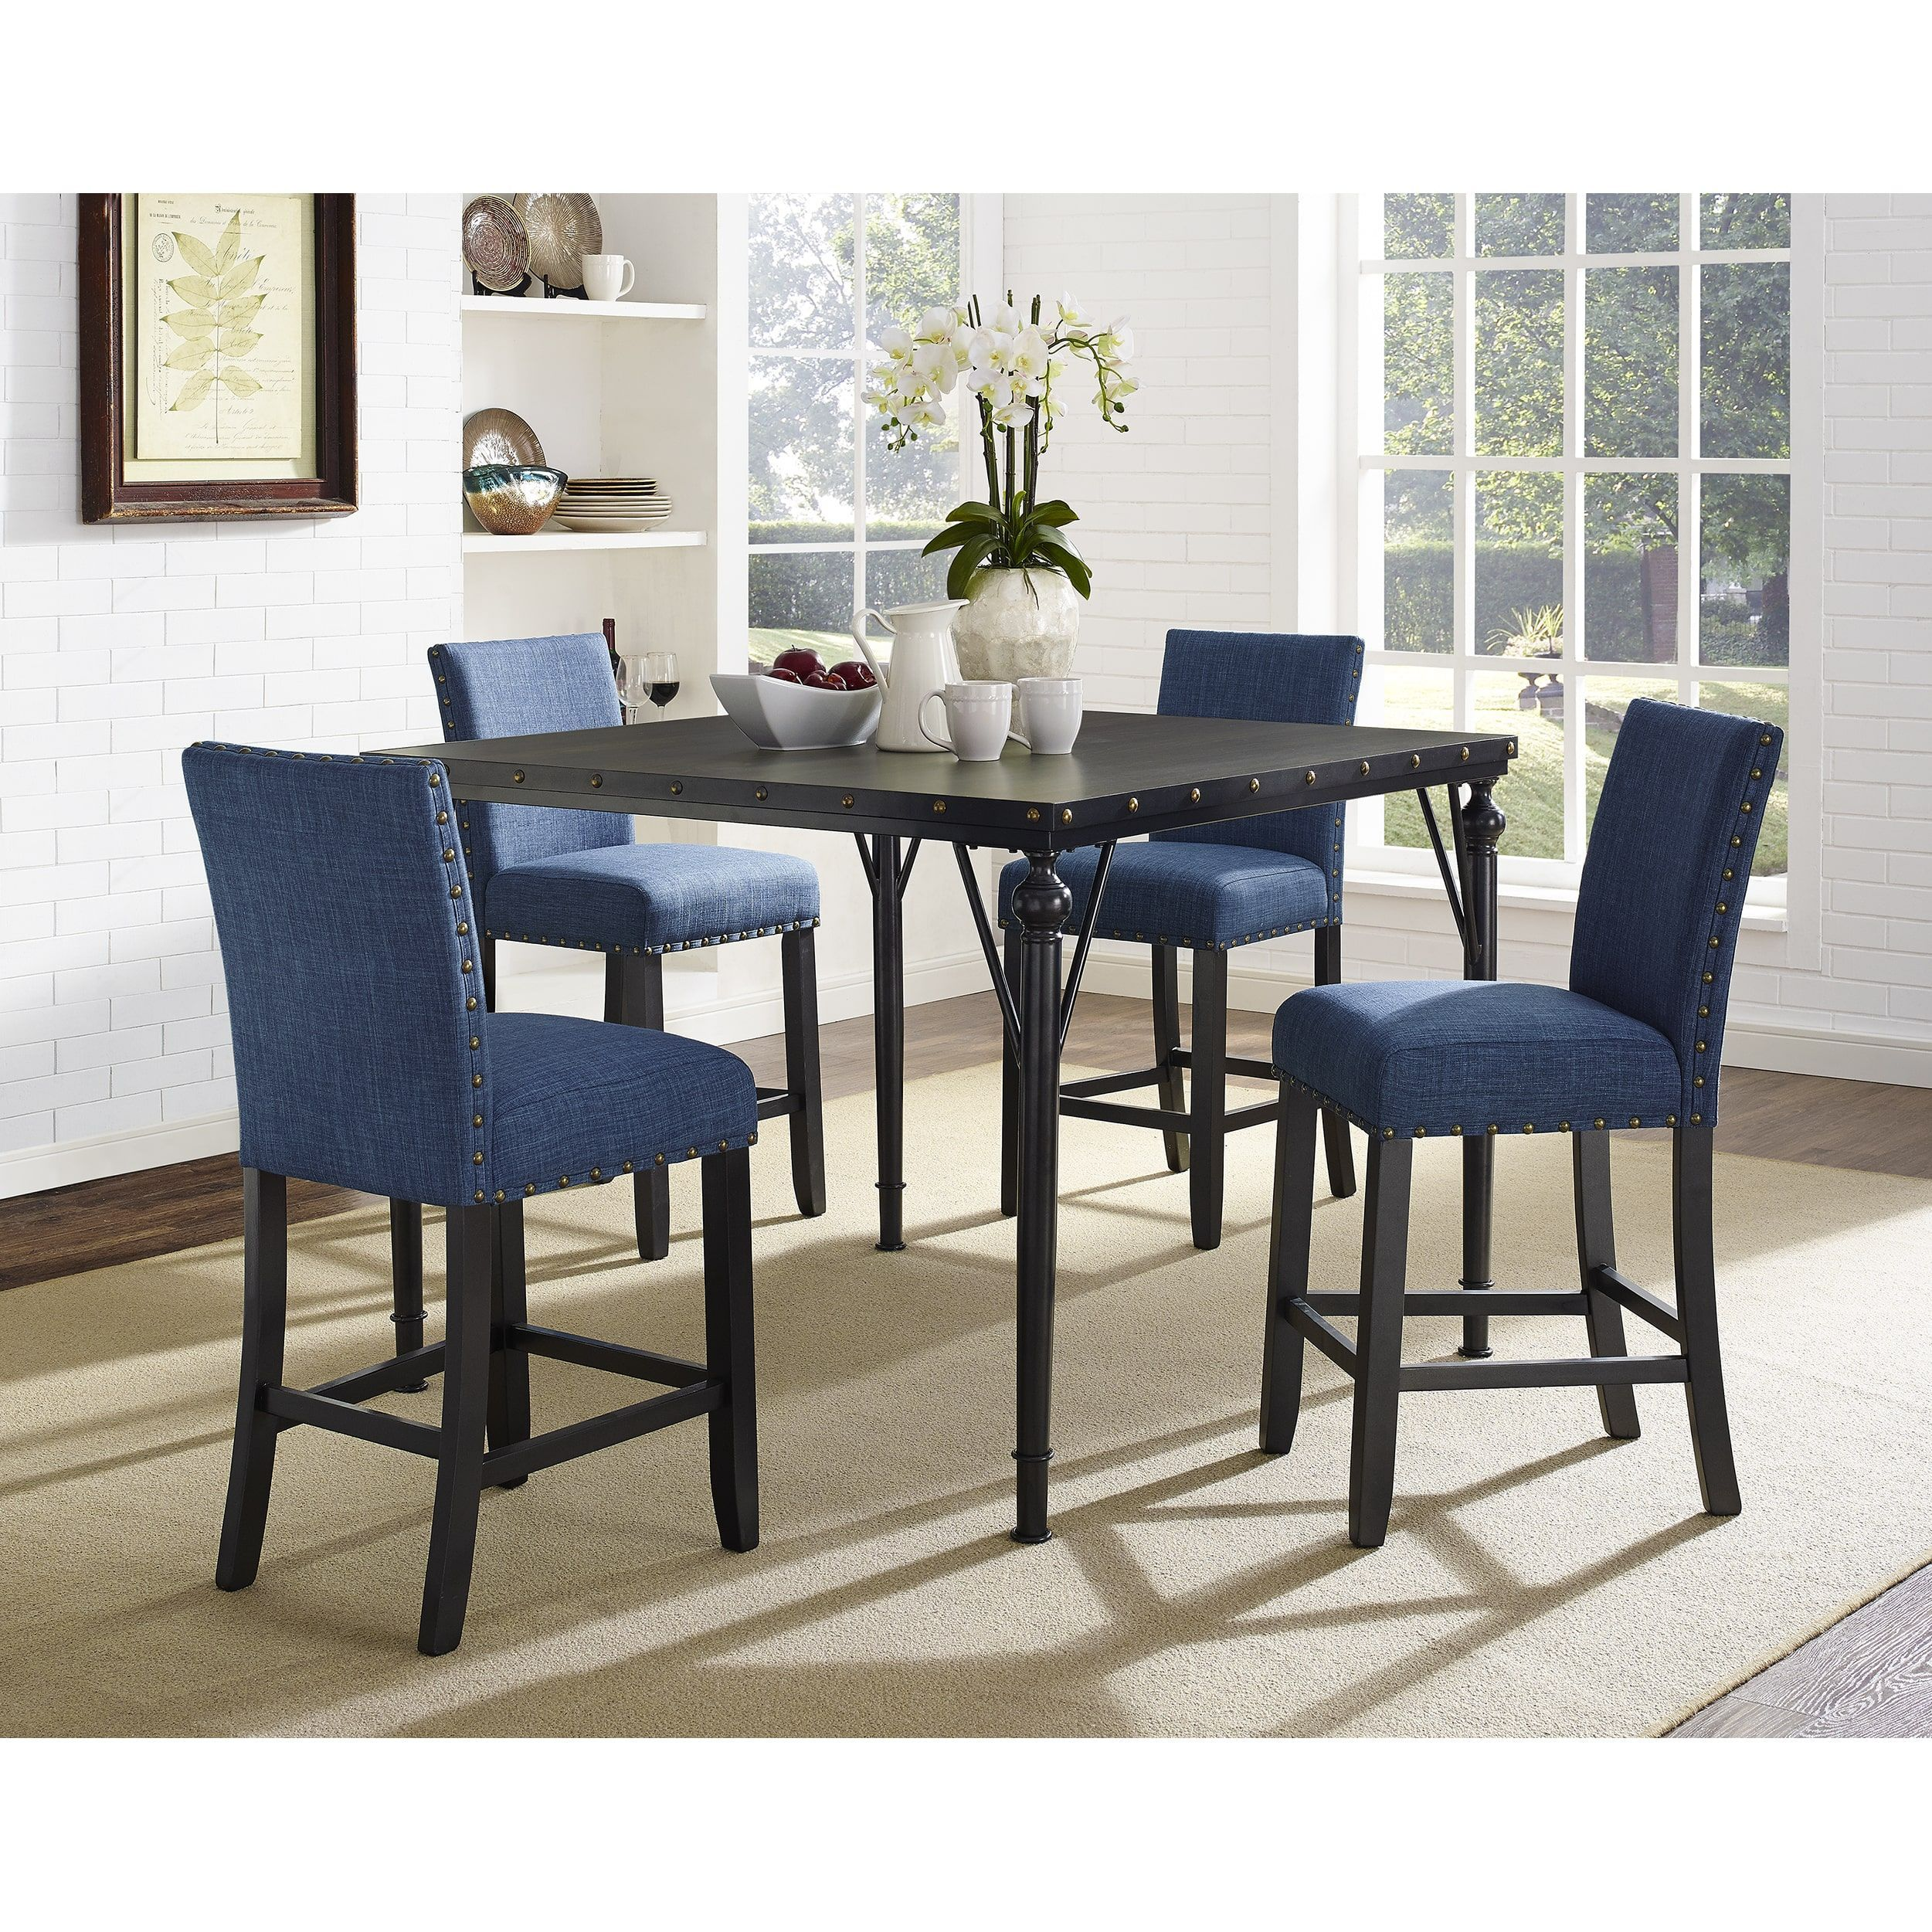 Biony 5-Piece Espresso Wood Counter Height Dining Set with Fabric ...